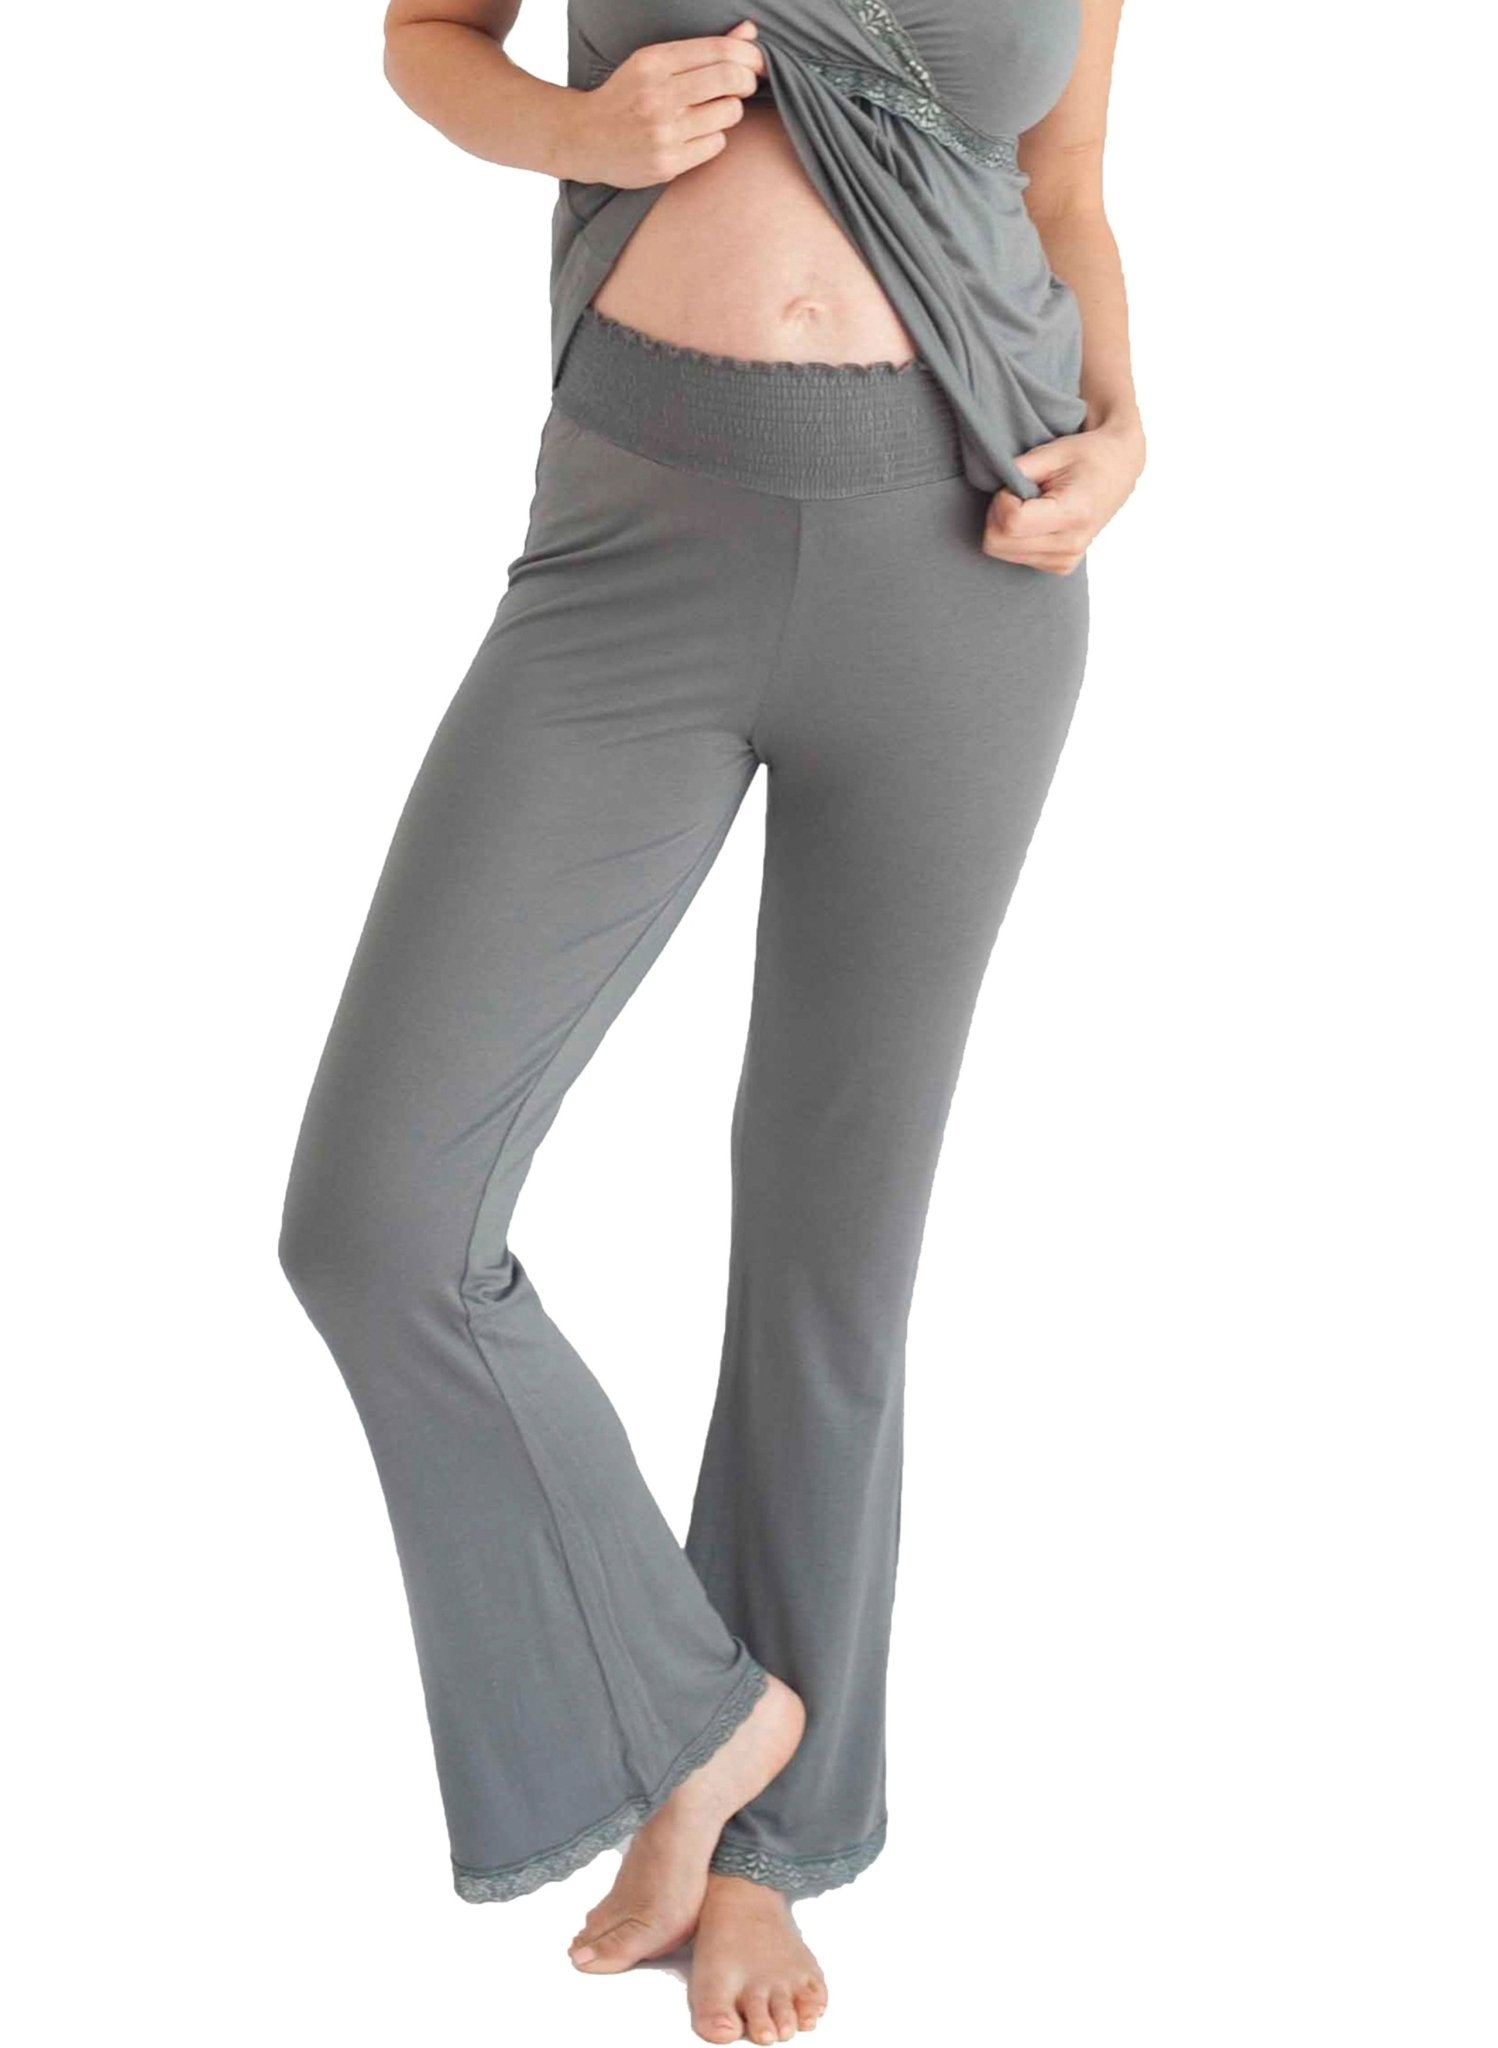 Before & After Maternity Loungepant - Grey - Mums and Bumps